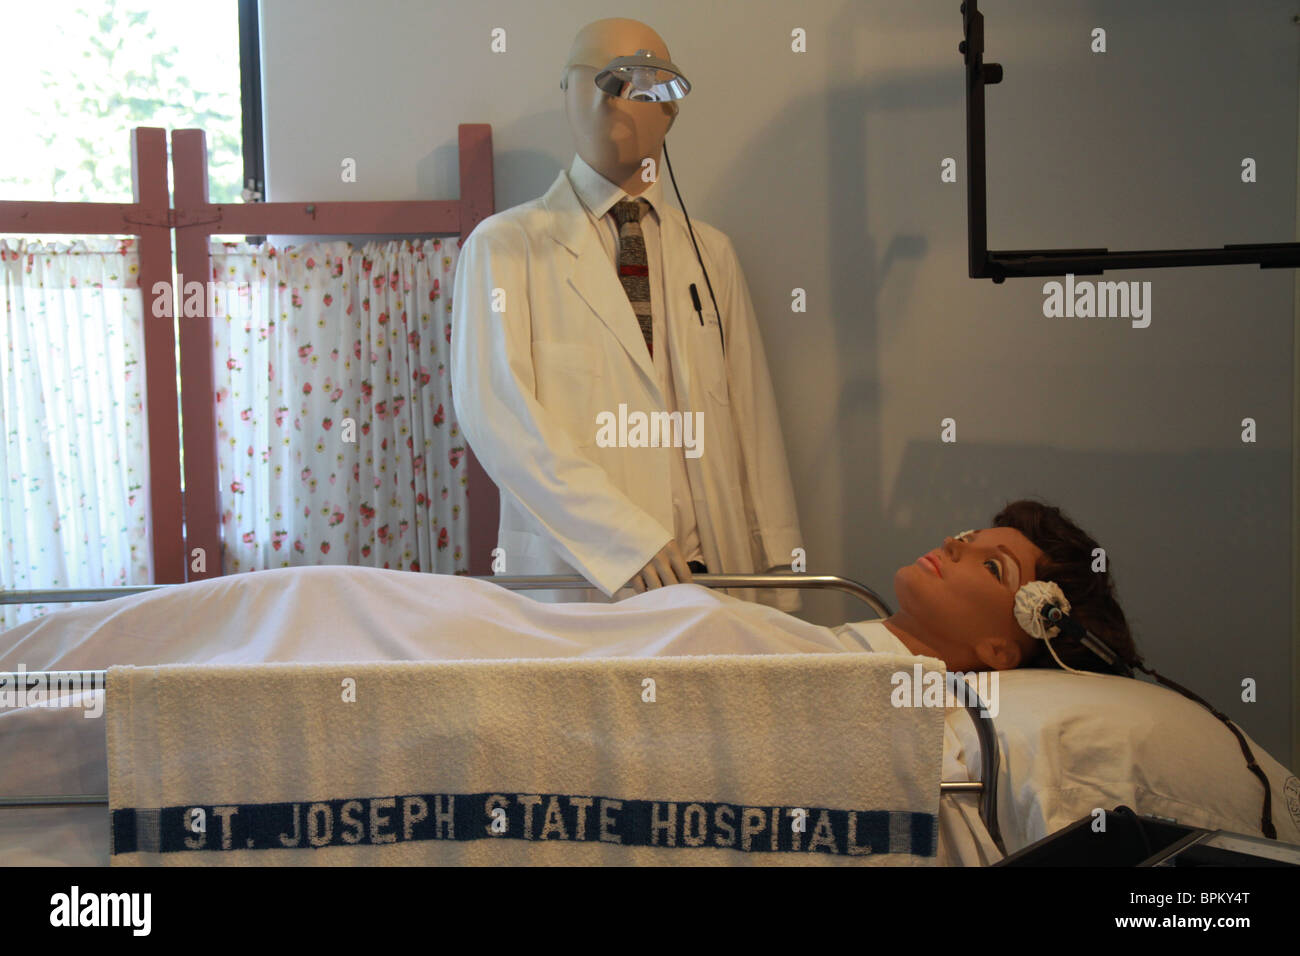 A display of electro shock therapy at the Glore Psychiatric Museum. - Stock Image